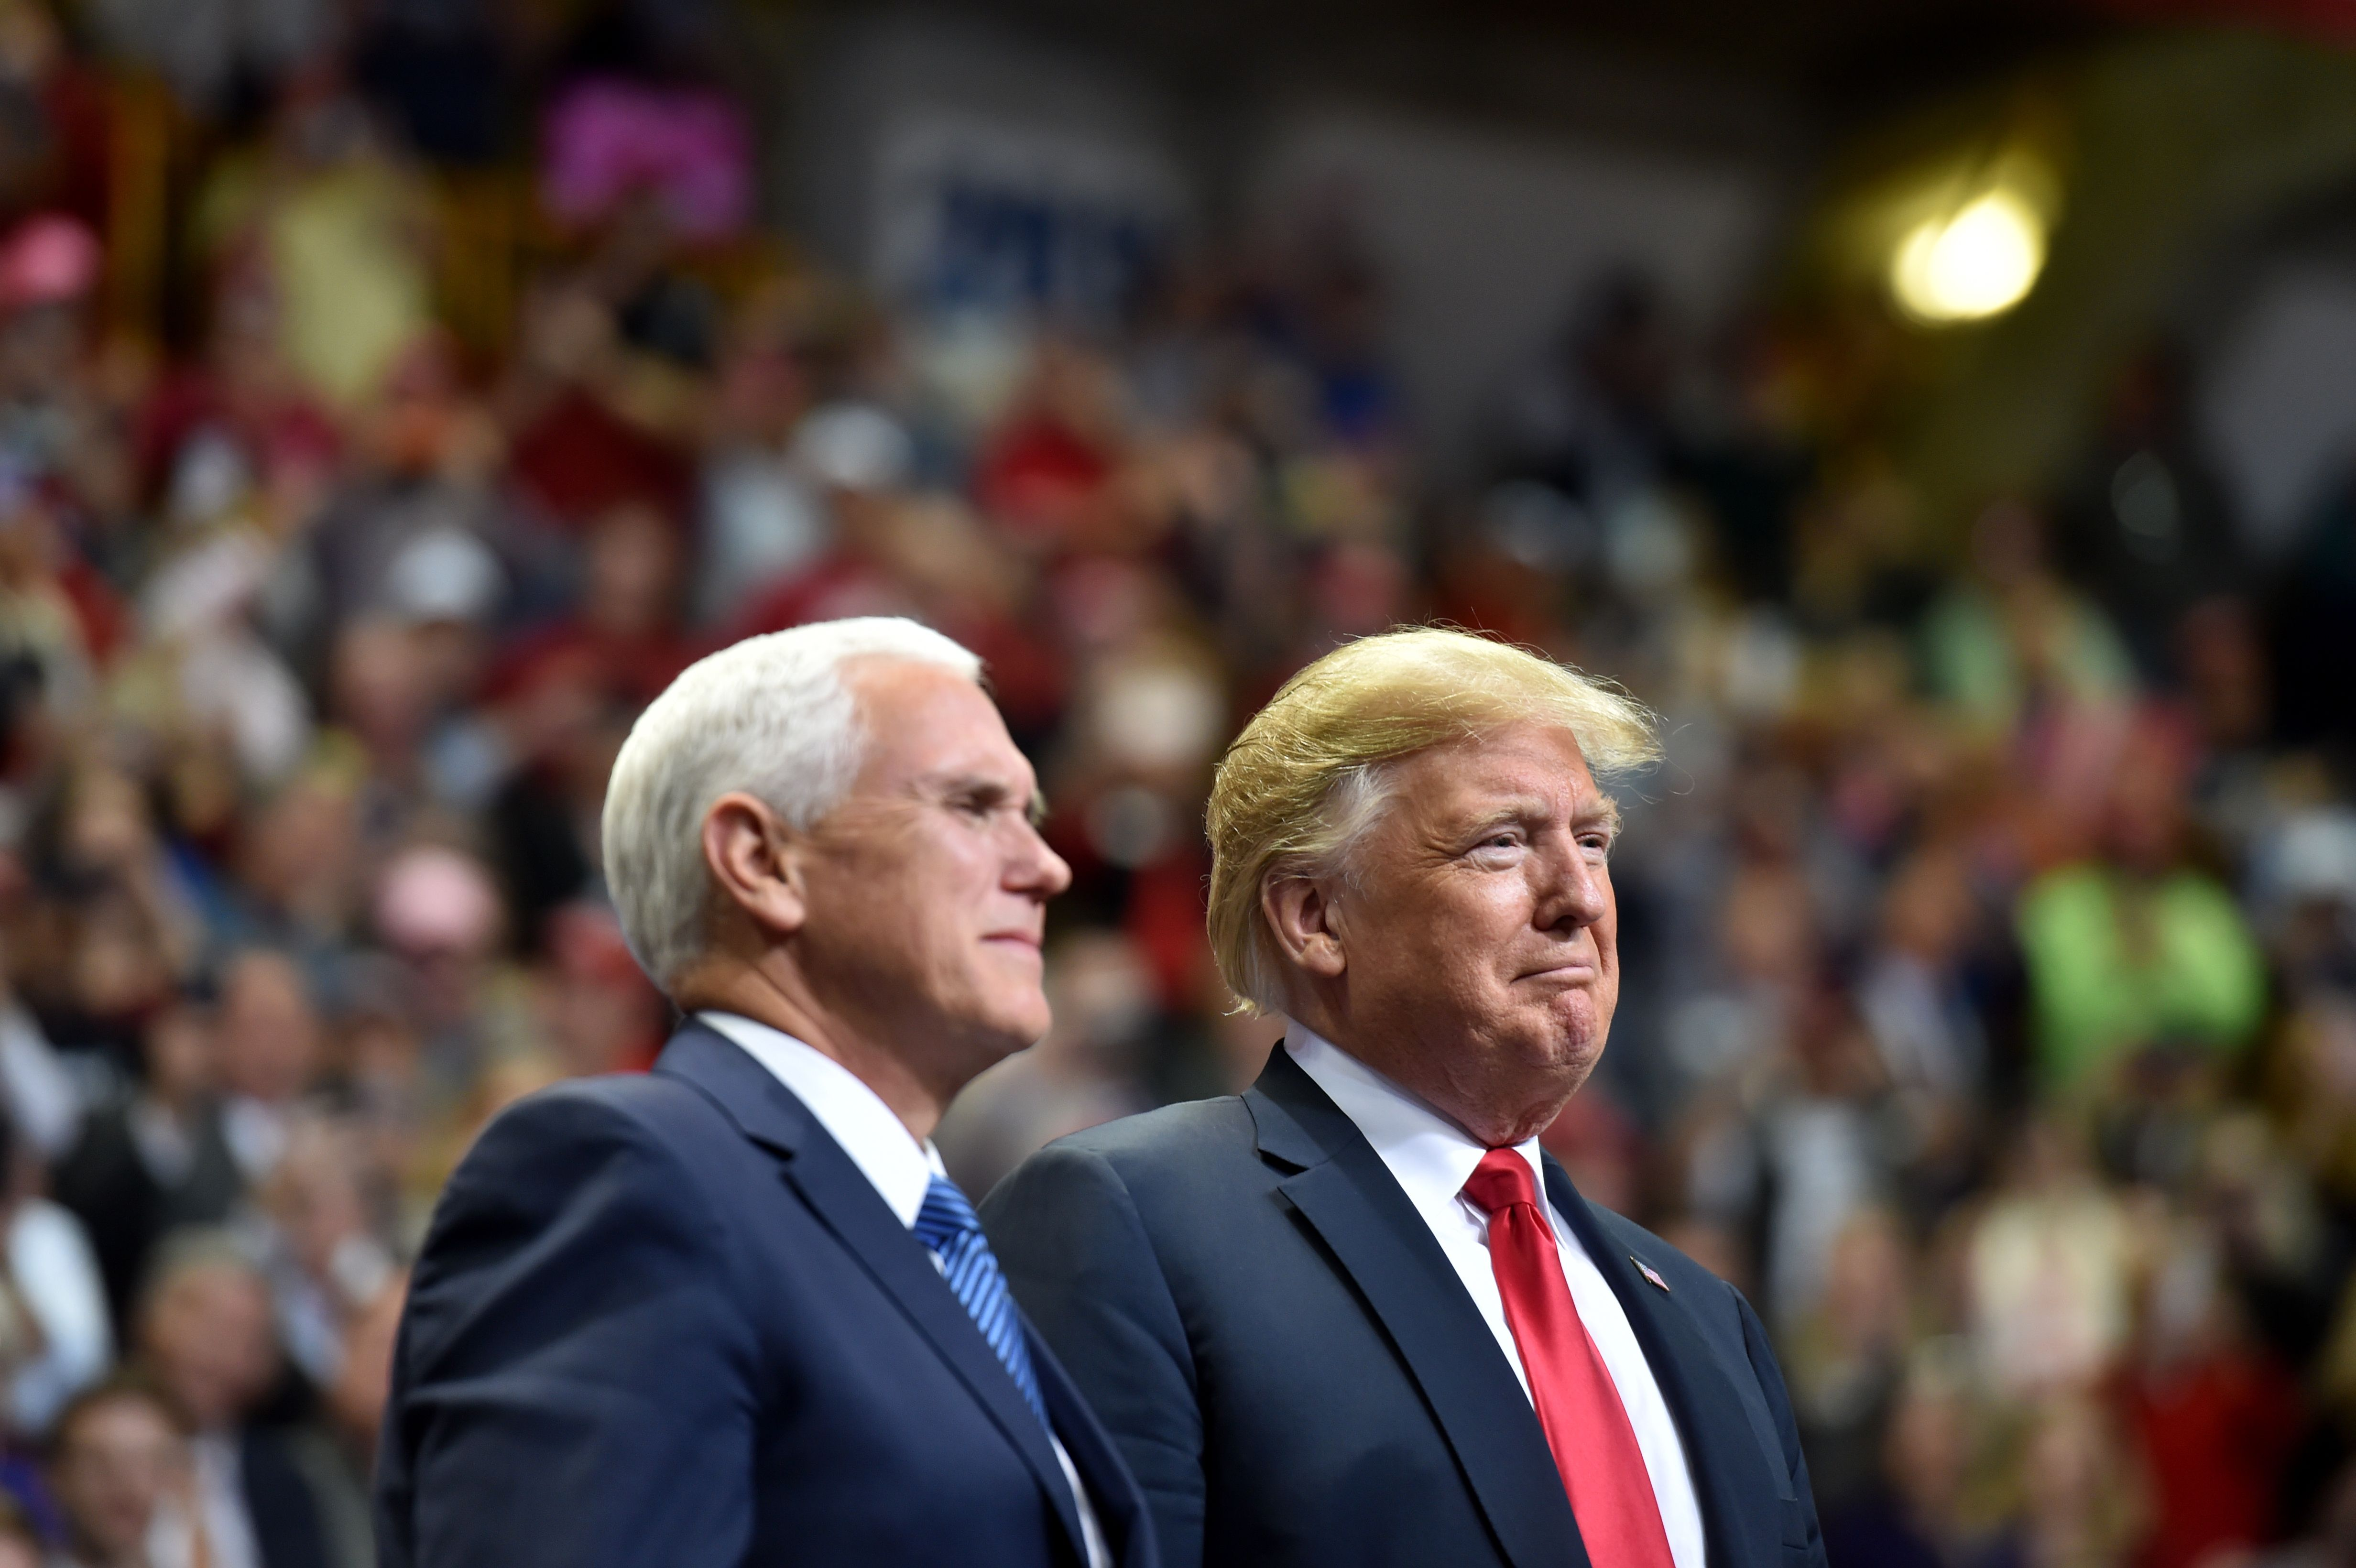 President Donald Trump and Vice President Mike Pence arrive for a  Make America Great Again  campaign rally at McKenzie Arena, in Chattanooga, Tennessee on Nov. 4, 2018.